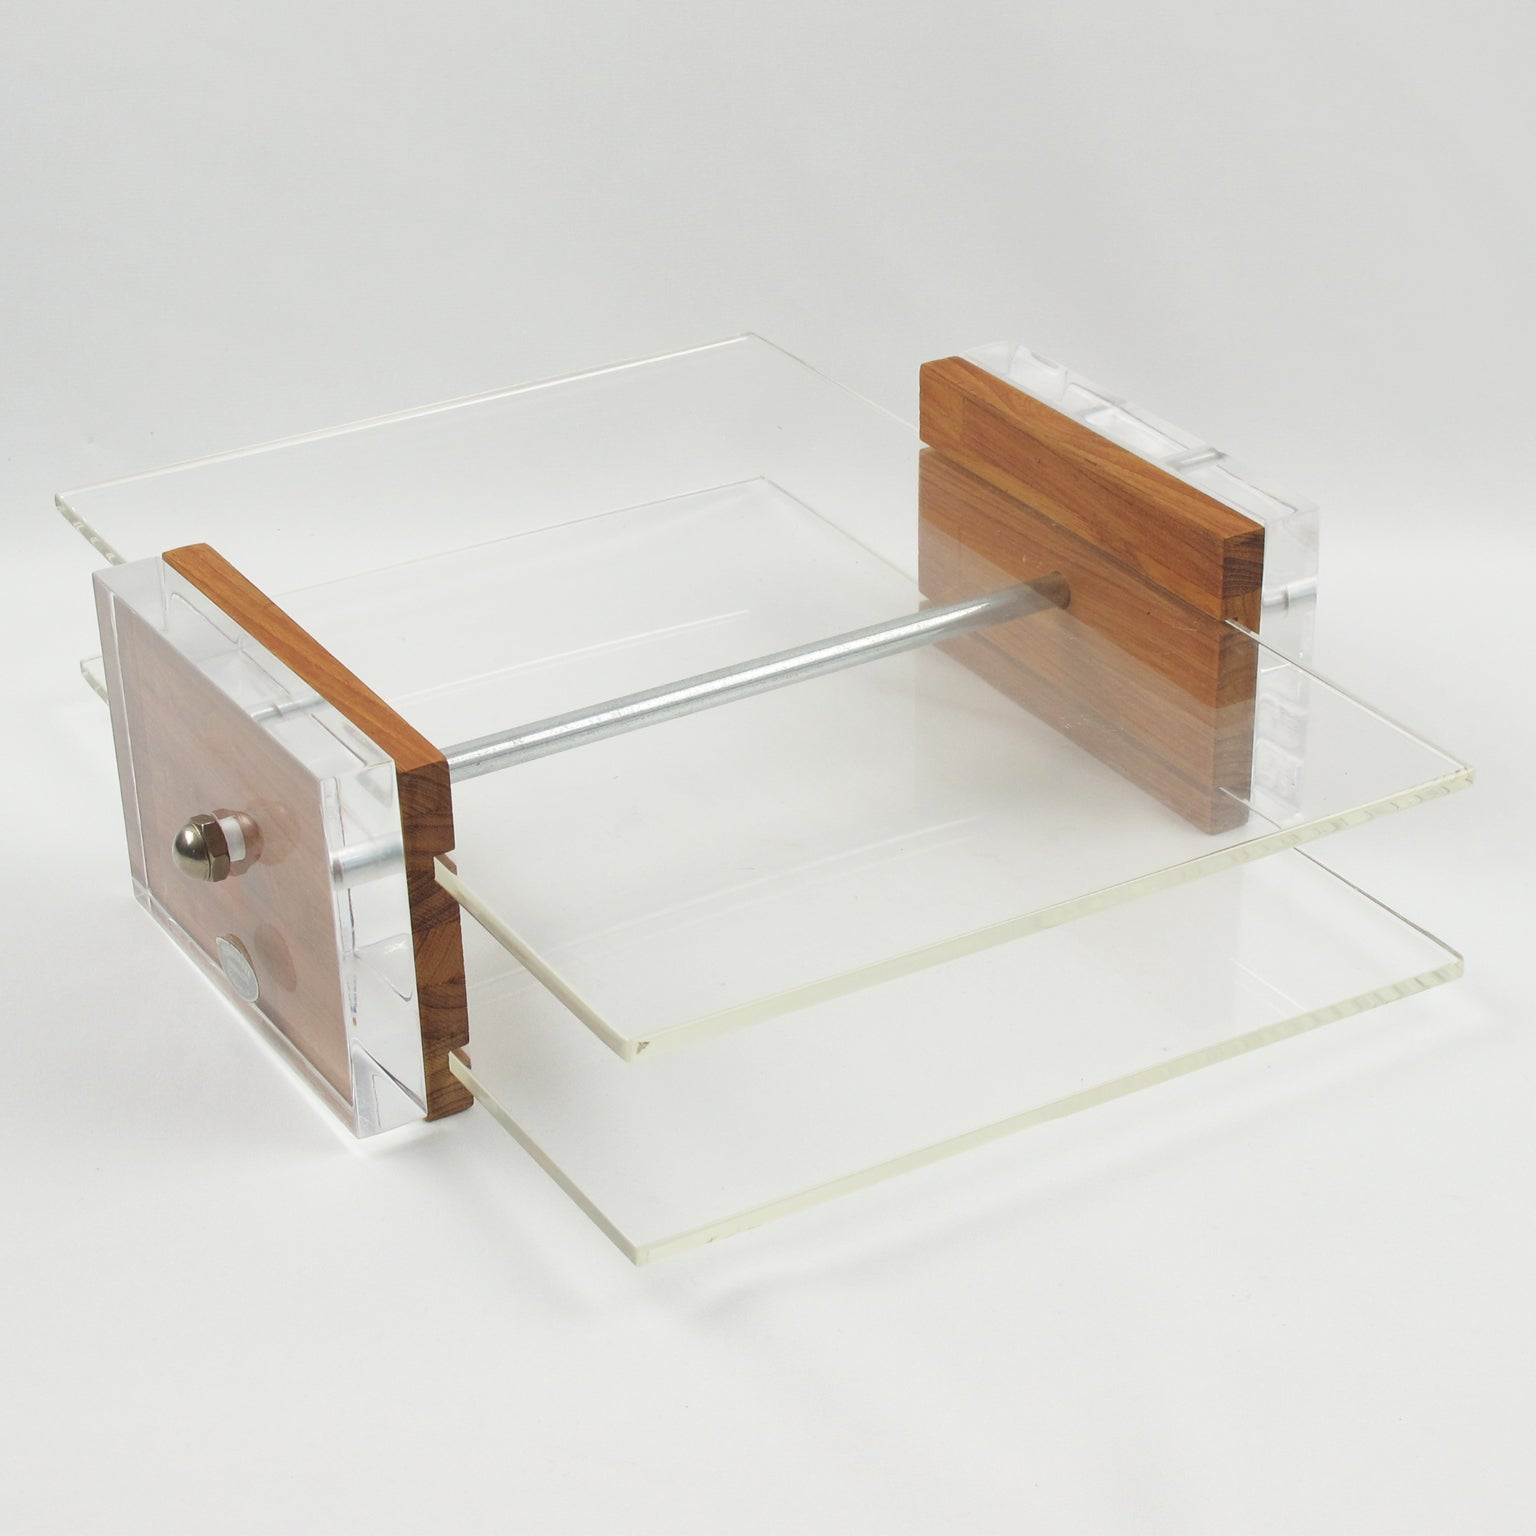 Ritts Co, La Modernist Lucite And Oak Astrolite Desk Set